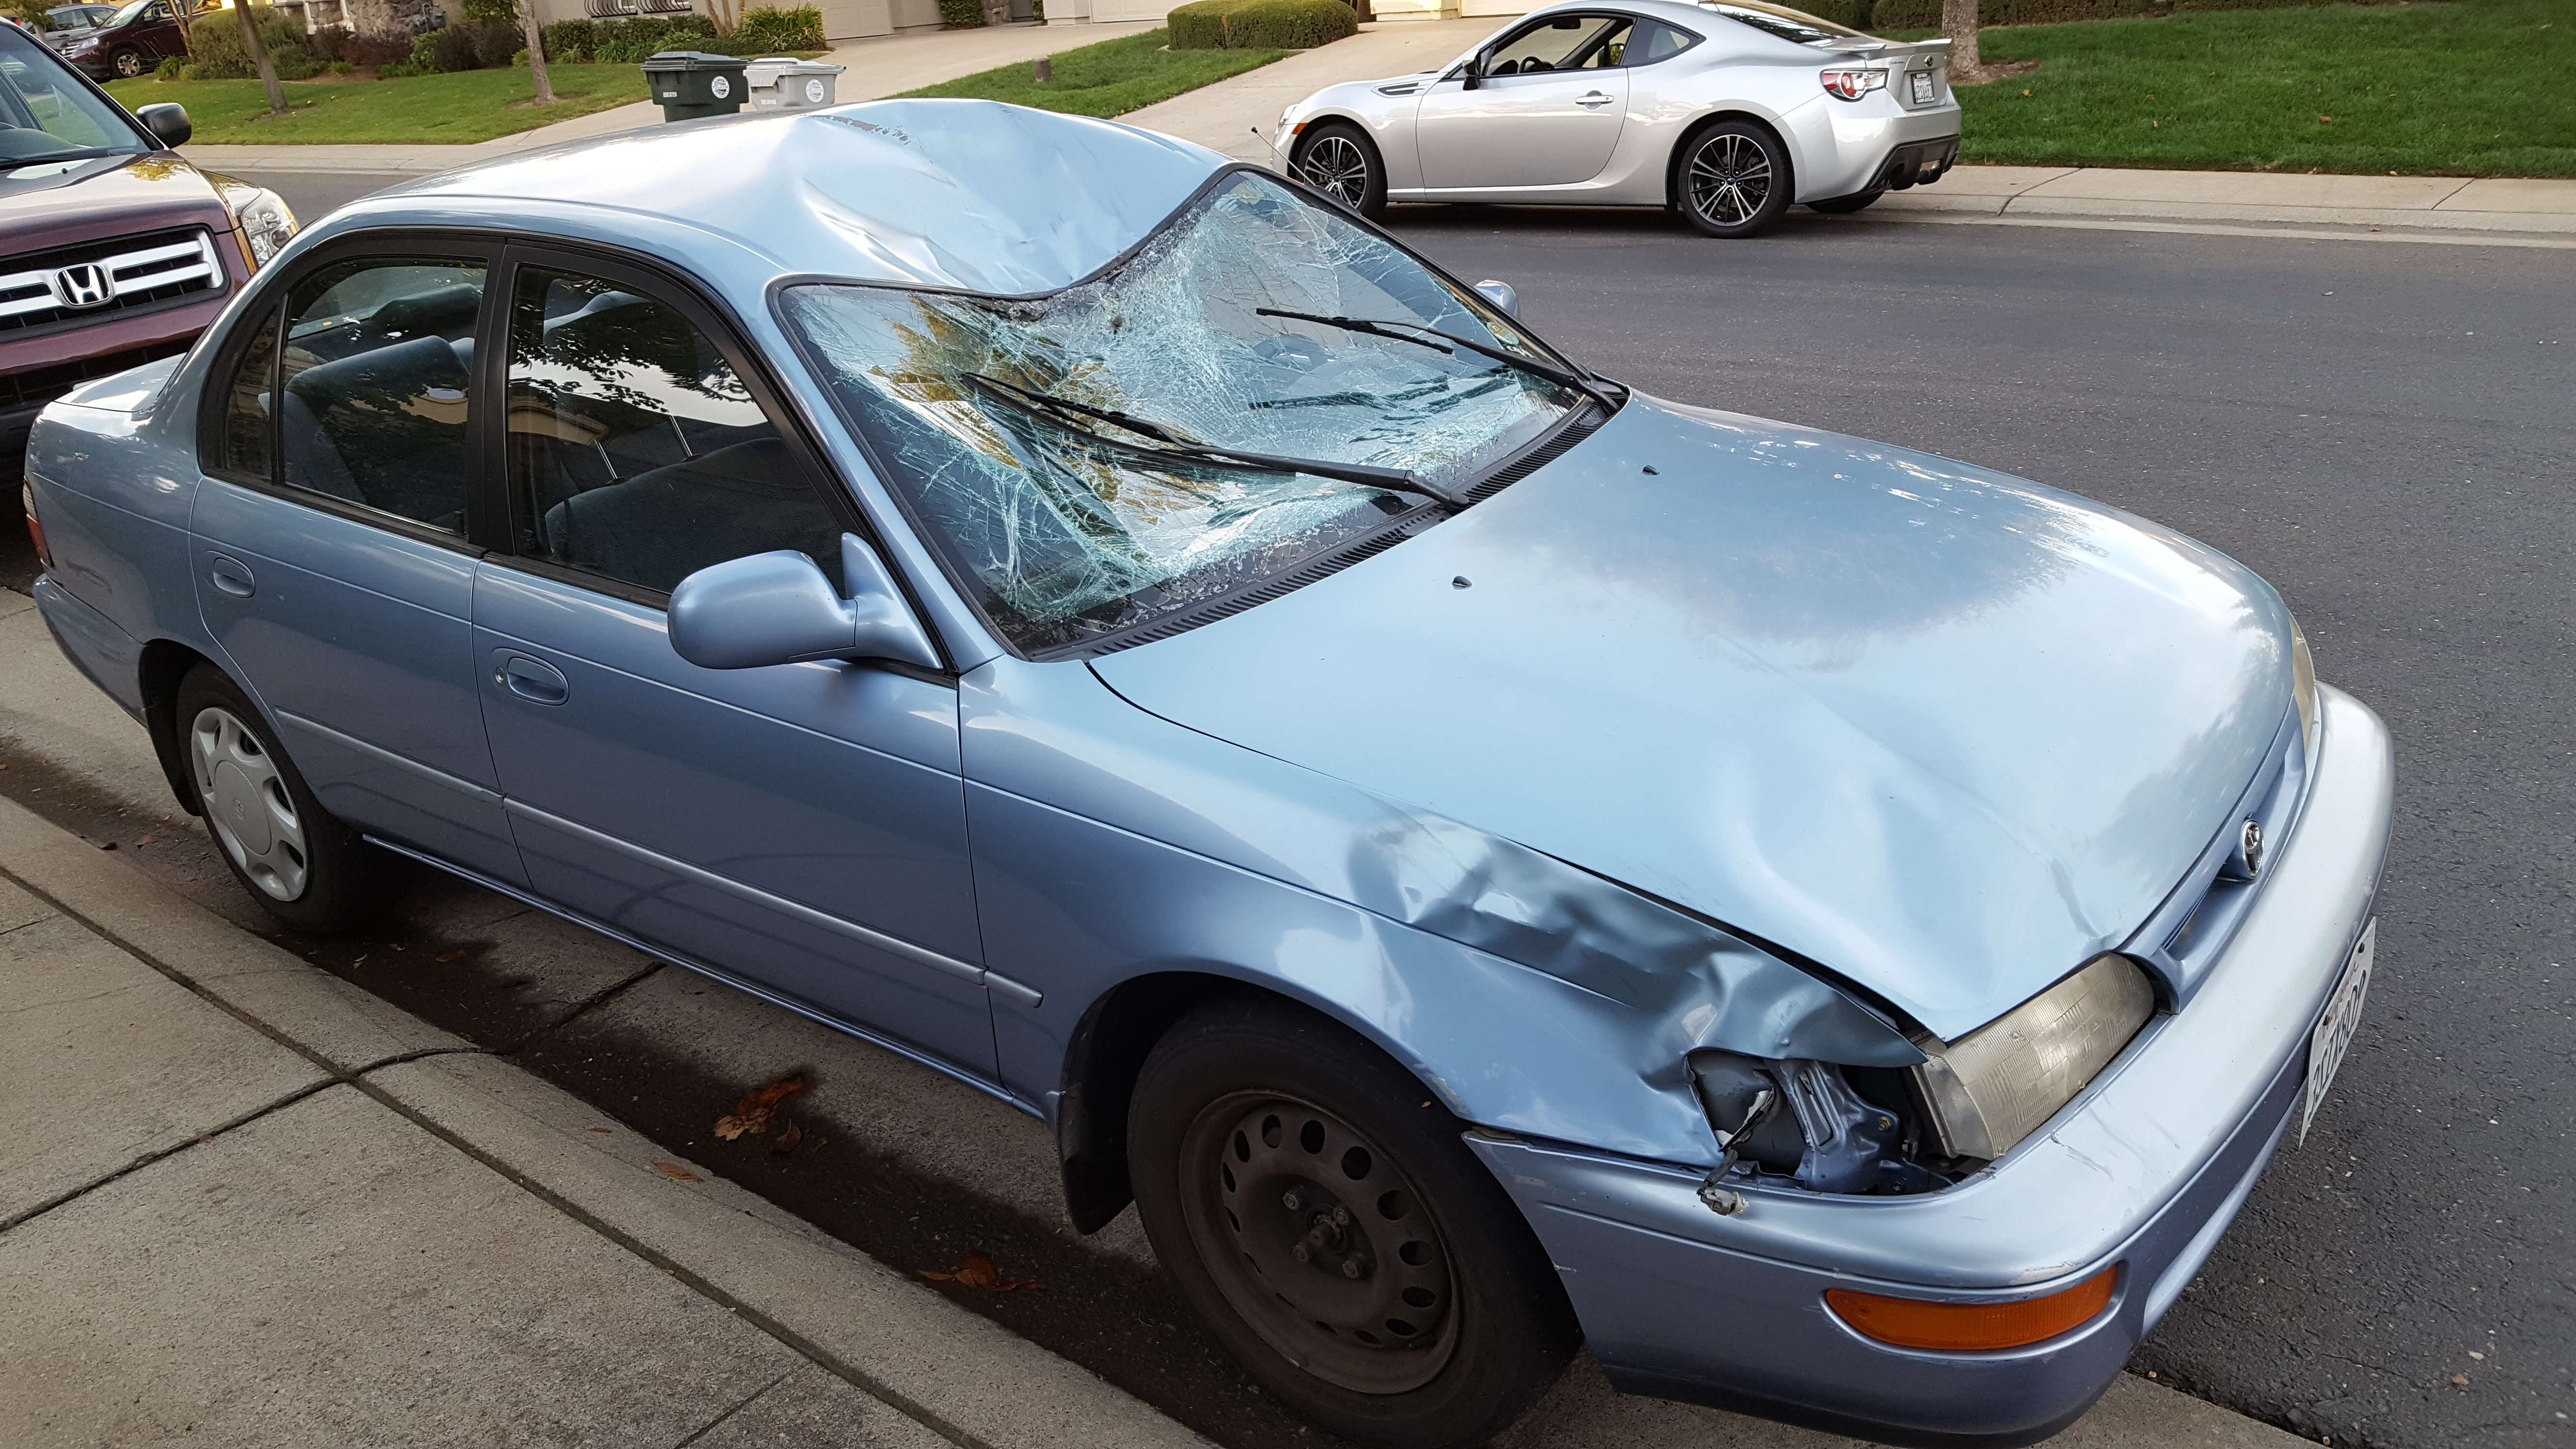 Cash for Cars Knoxville, TN | Sell Your Junk Car | The Clunker Junker